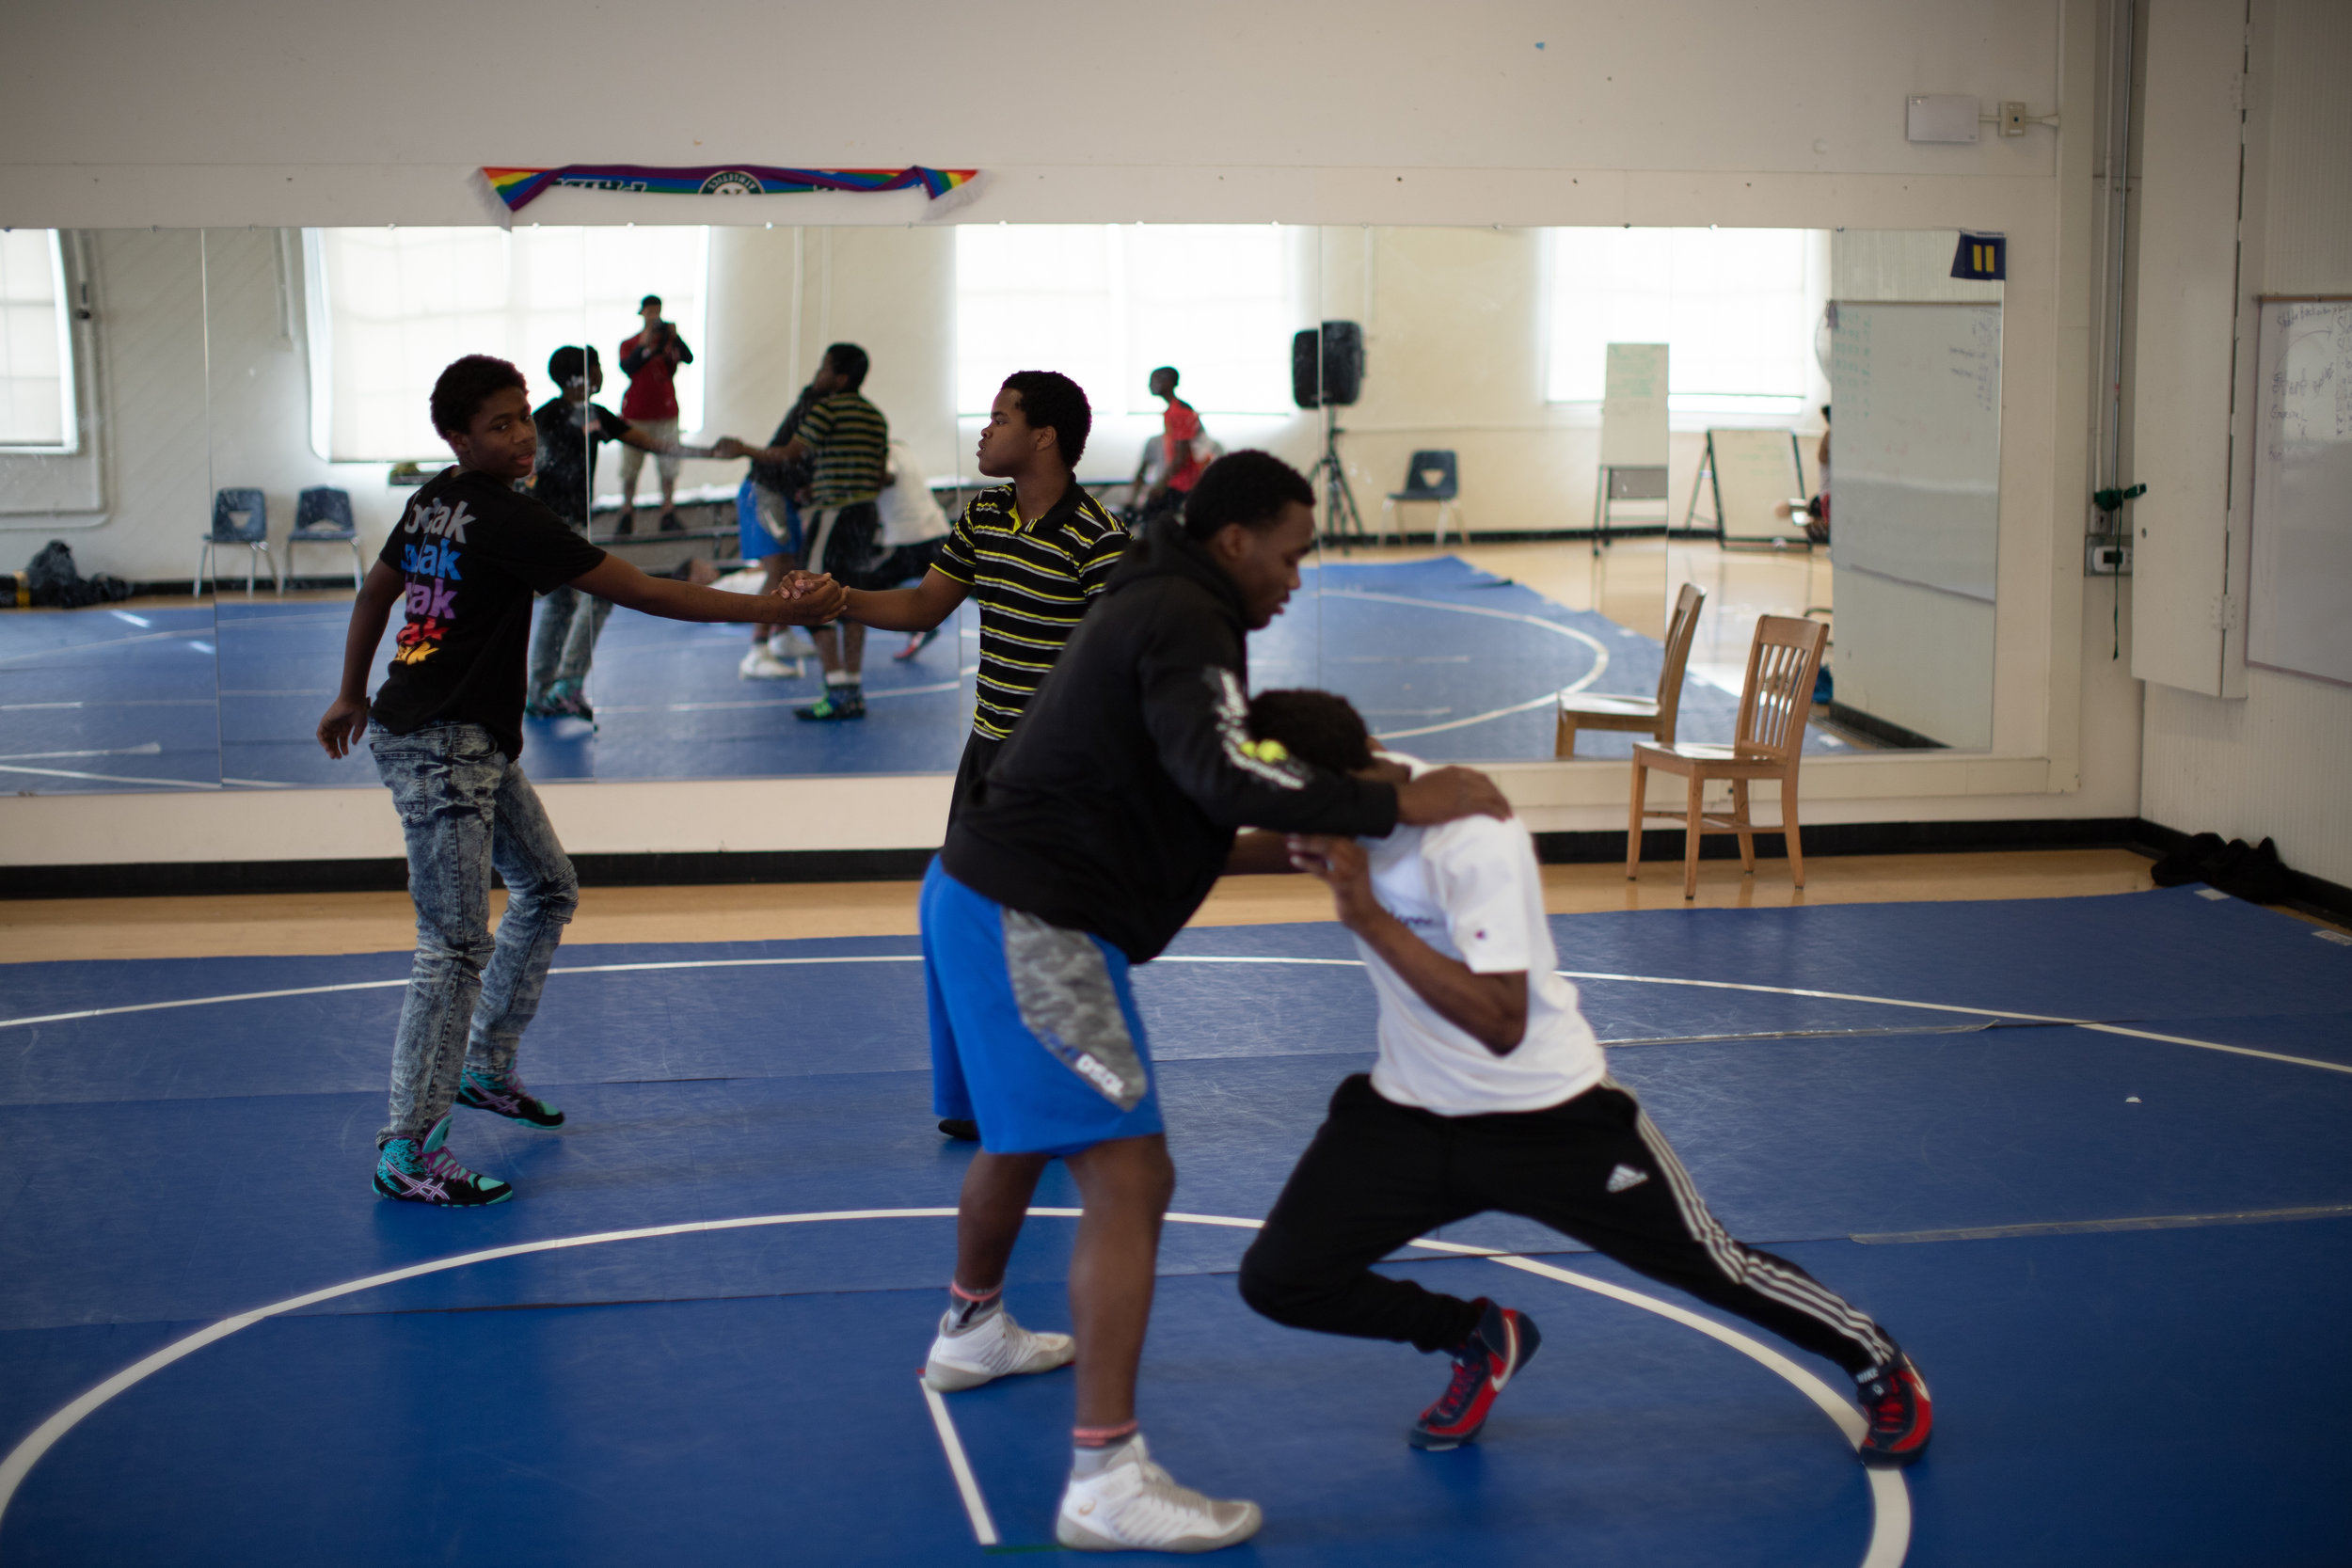 Assistant Coach Denzel Mabry works with students at Westlake (photo by Leonardo Flores).